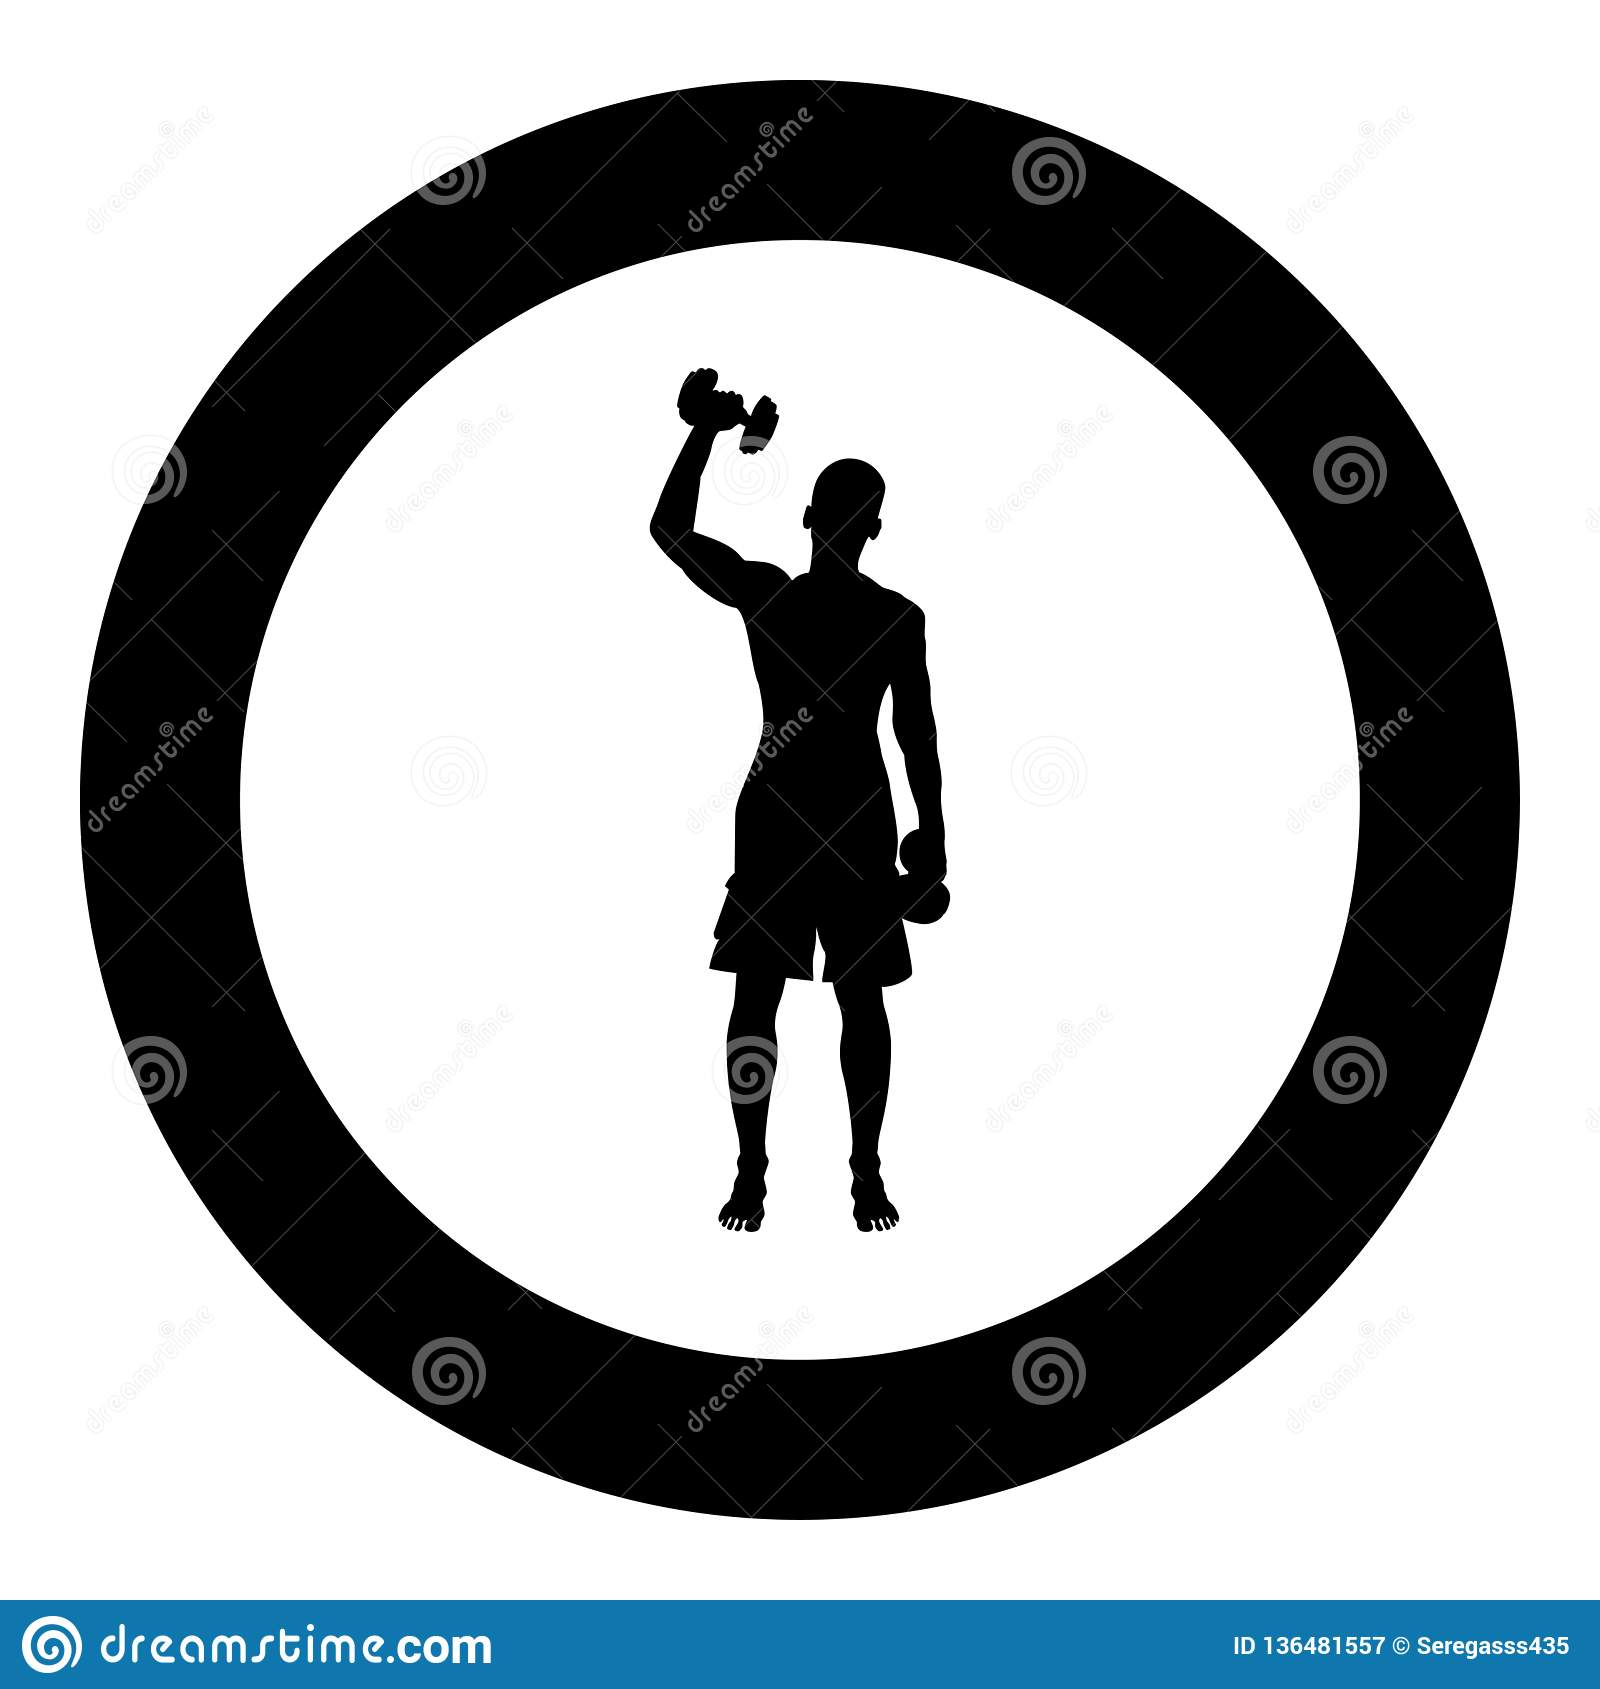 Wall Clock Basketball Fitness Silhouette